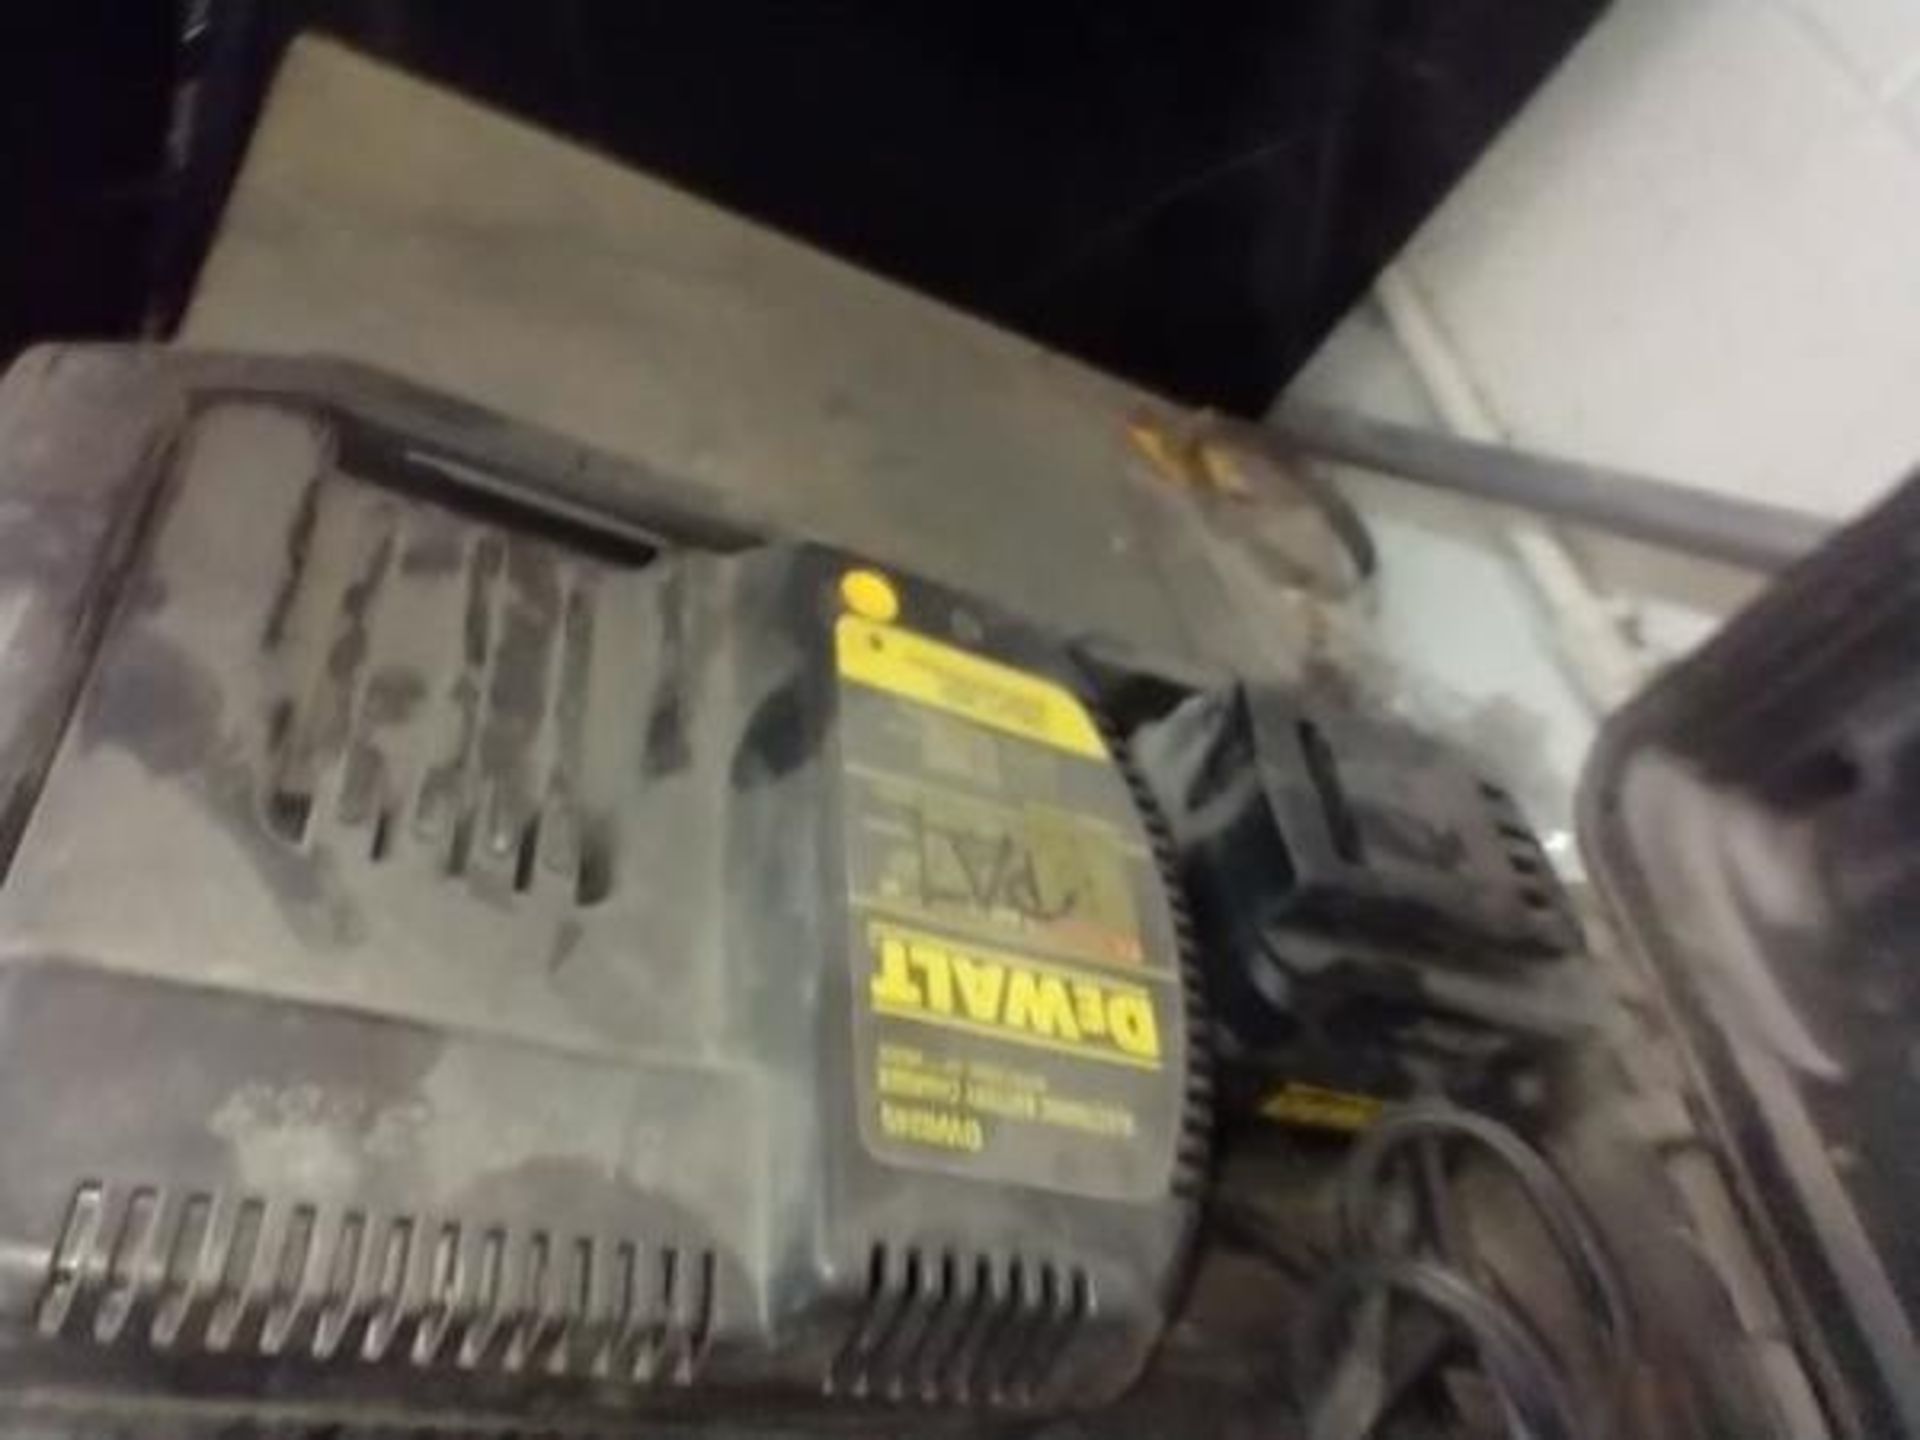 DEWALT DW006 24V HAMMER DRILL WITH 2 BATTERIES AND AC ADAPTER - Image 5 of 5